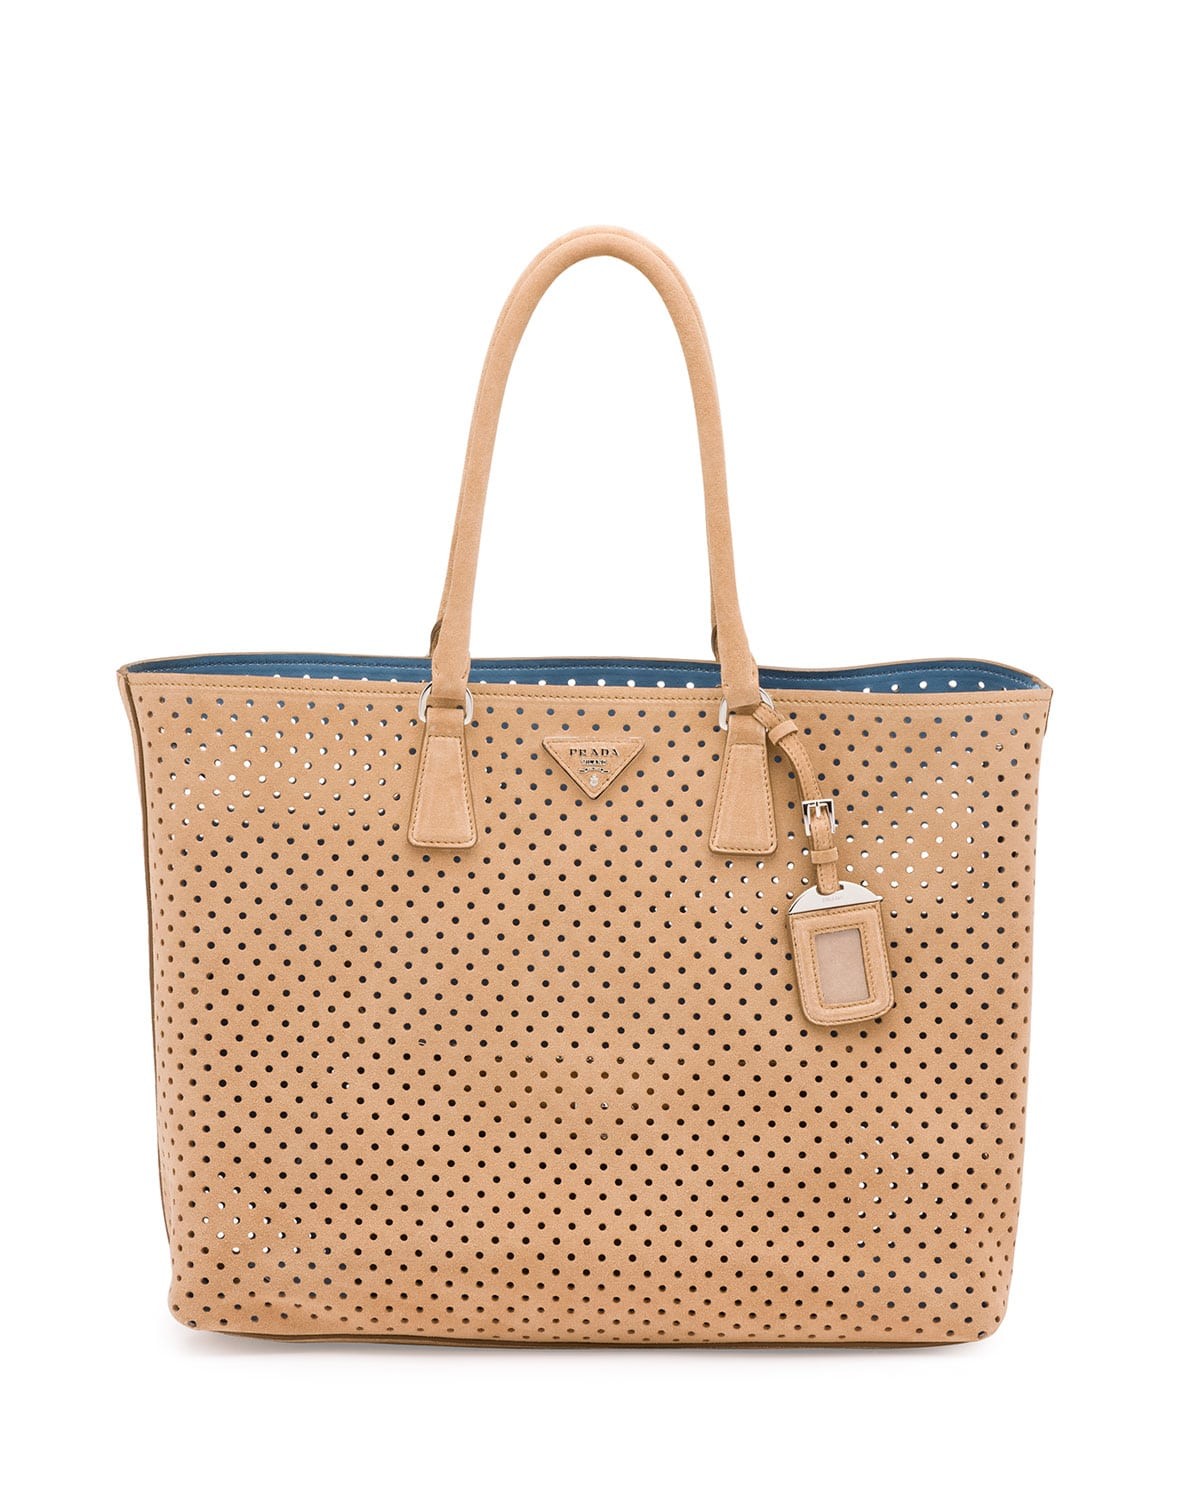 perforated prada totes how to tell a fake prada handbag